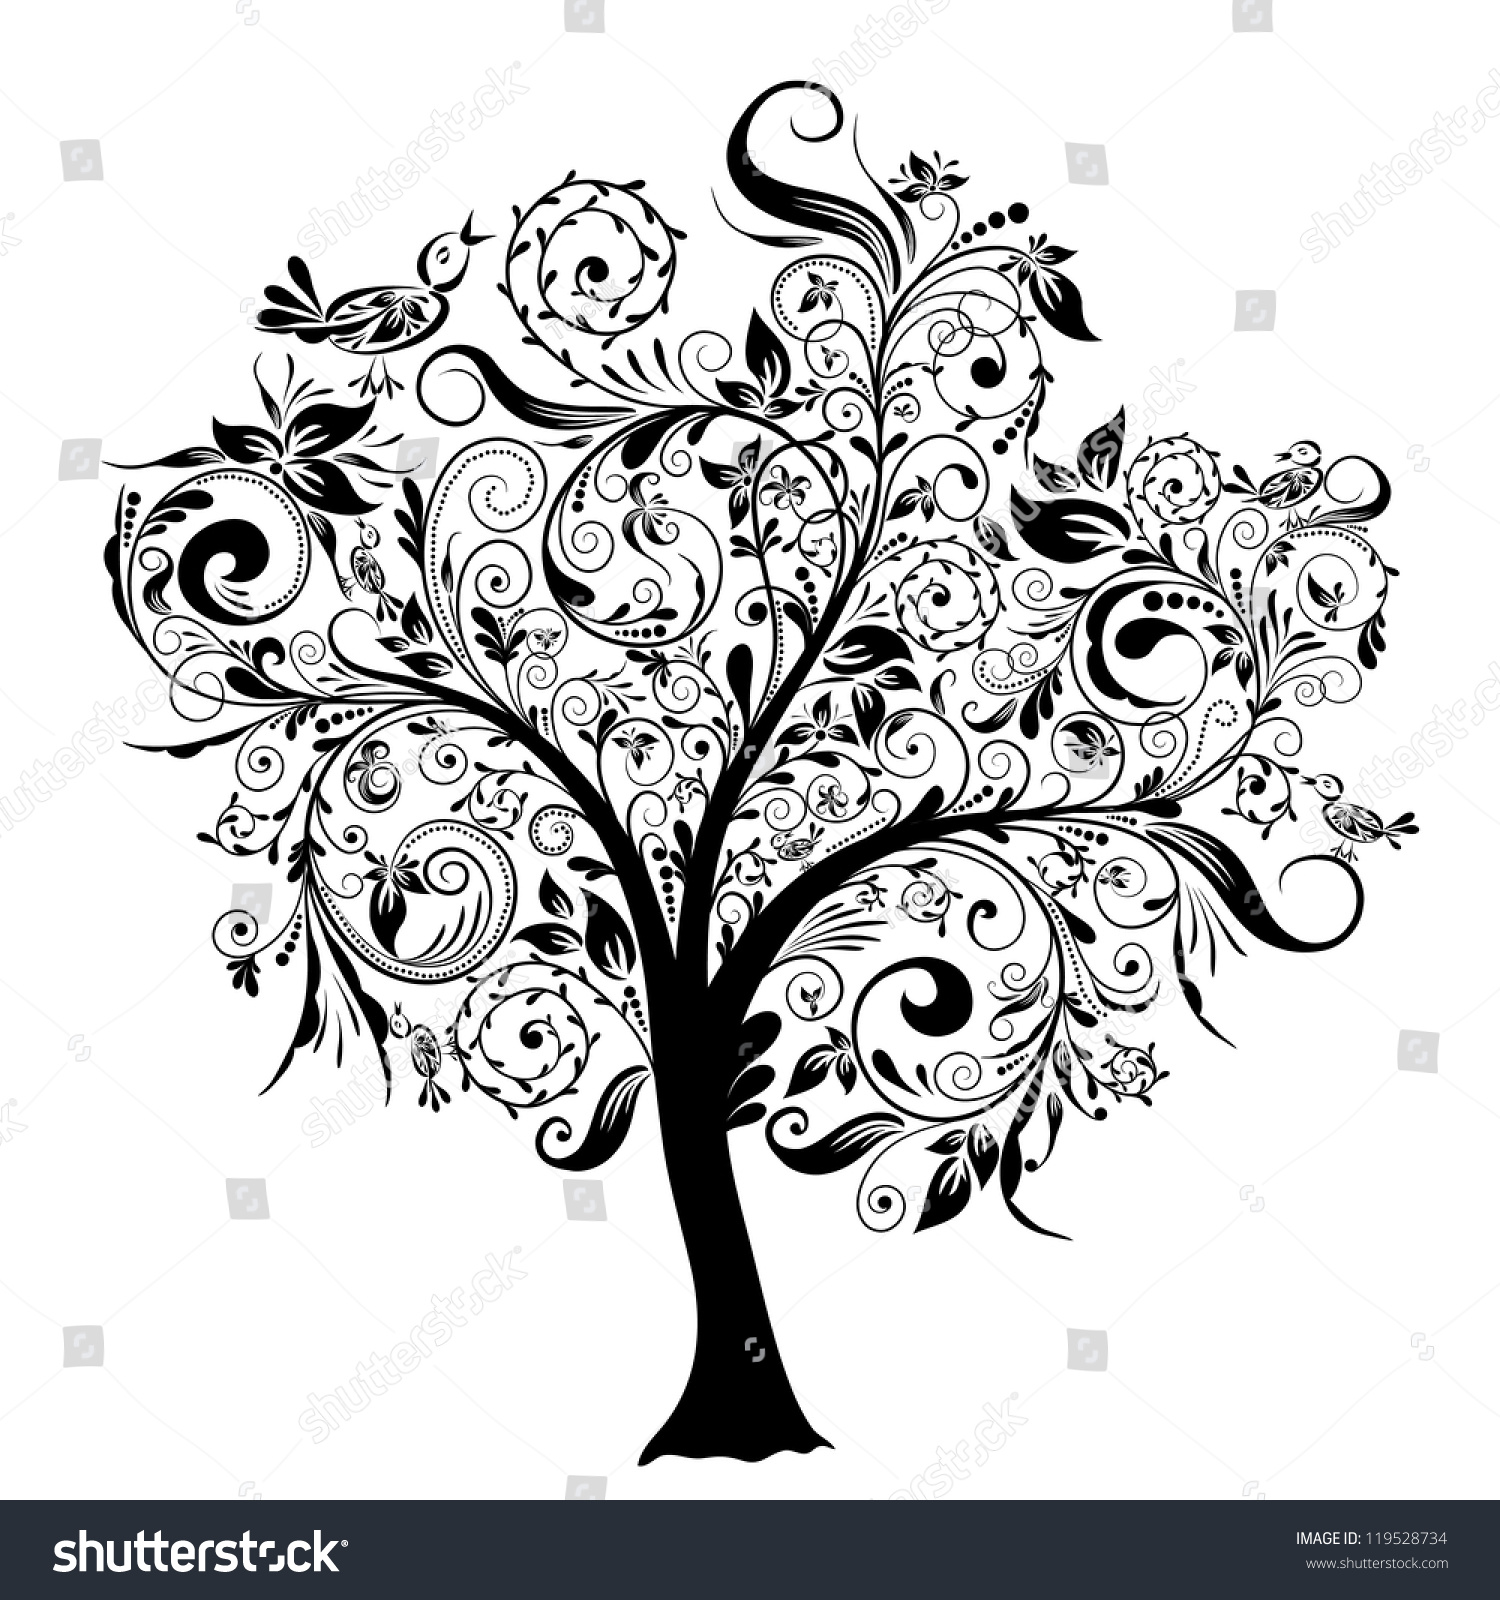 small tree garden green photo a decor pod growing branch image in of stock images isolated white decorative